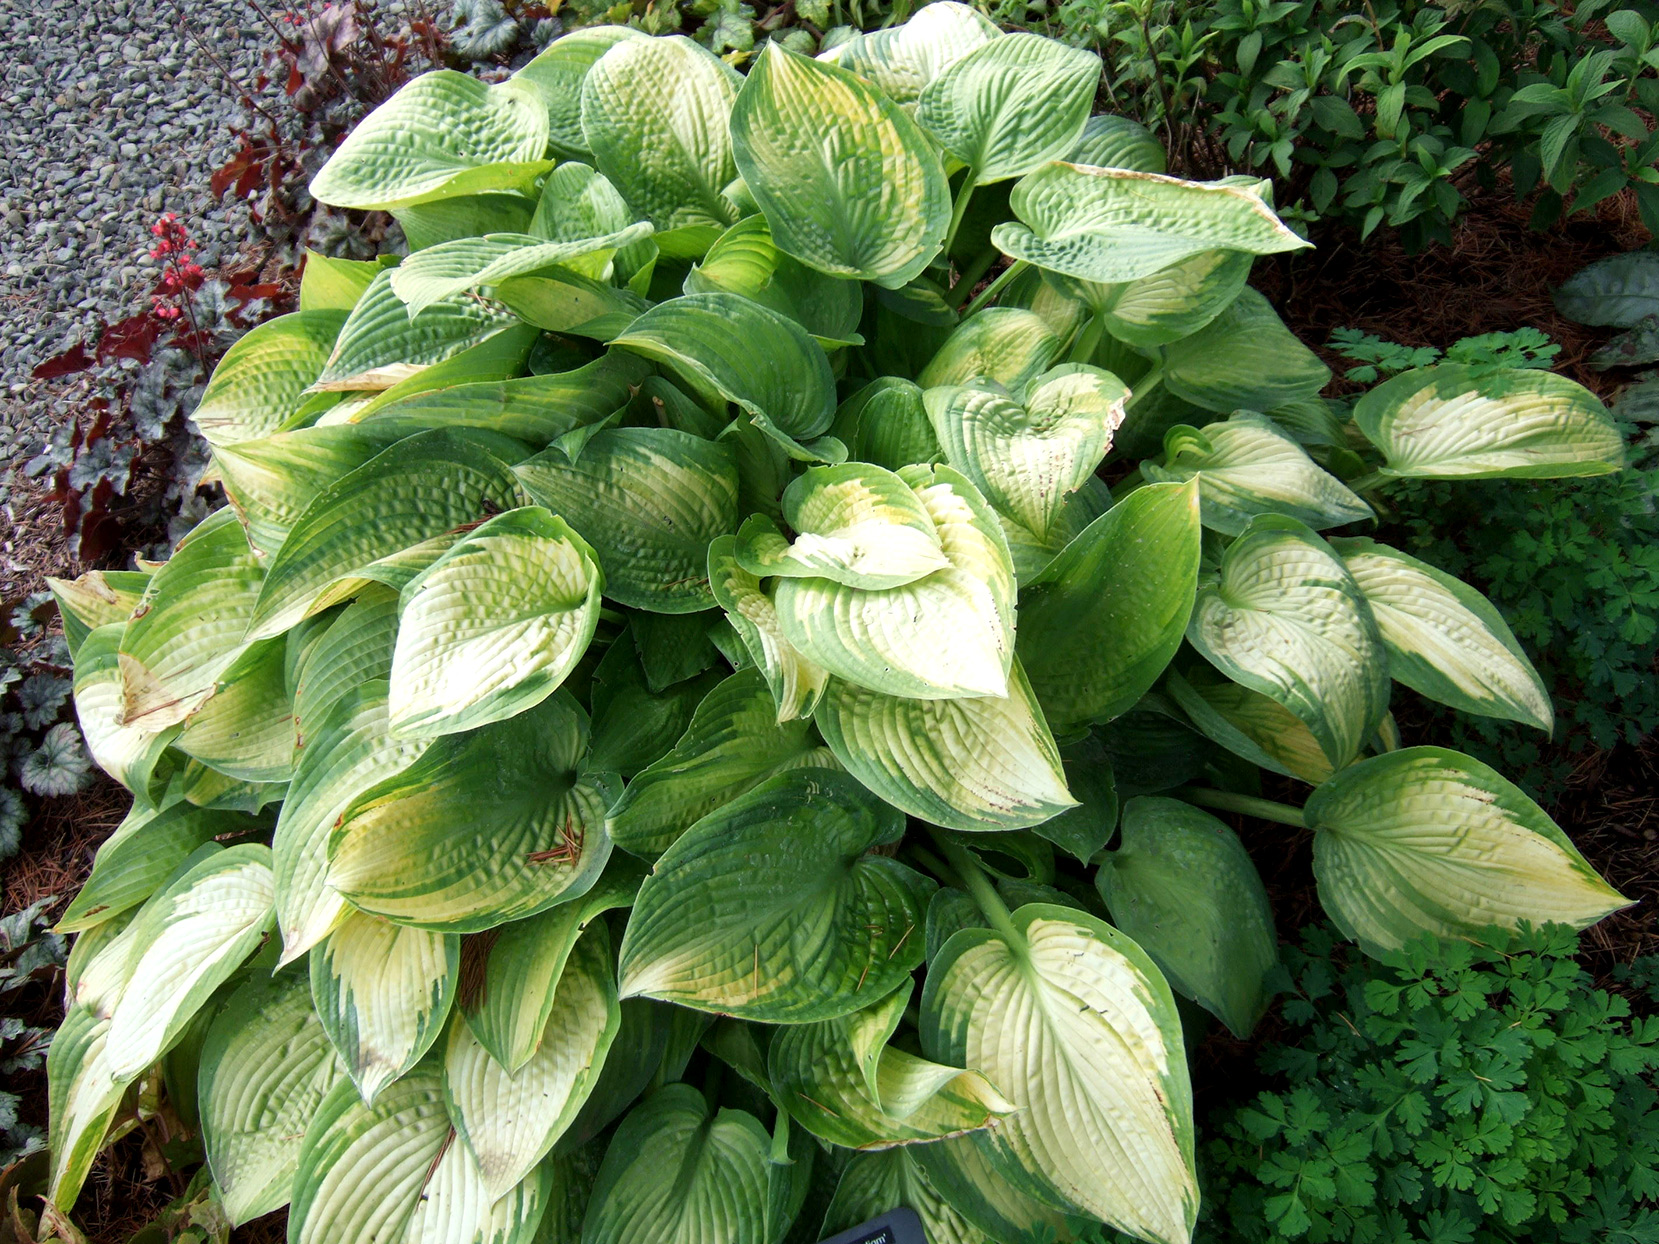 Paradigm Hosta with golden leaves and green edges